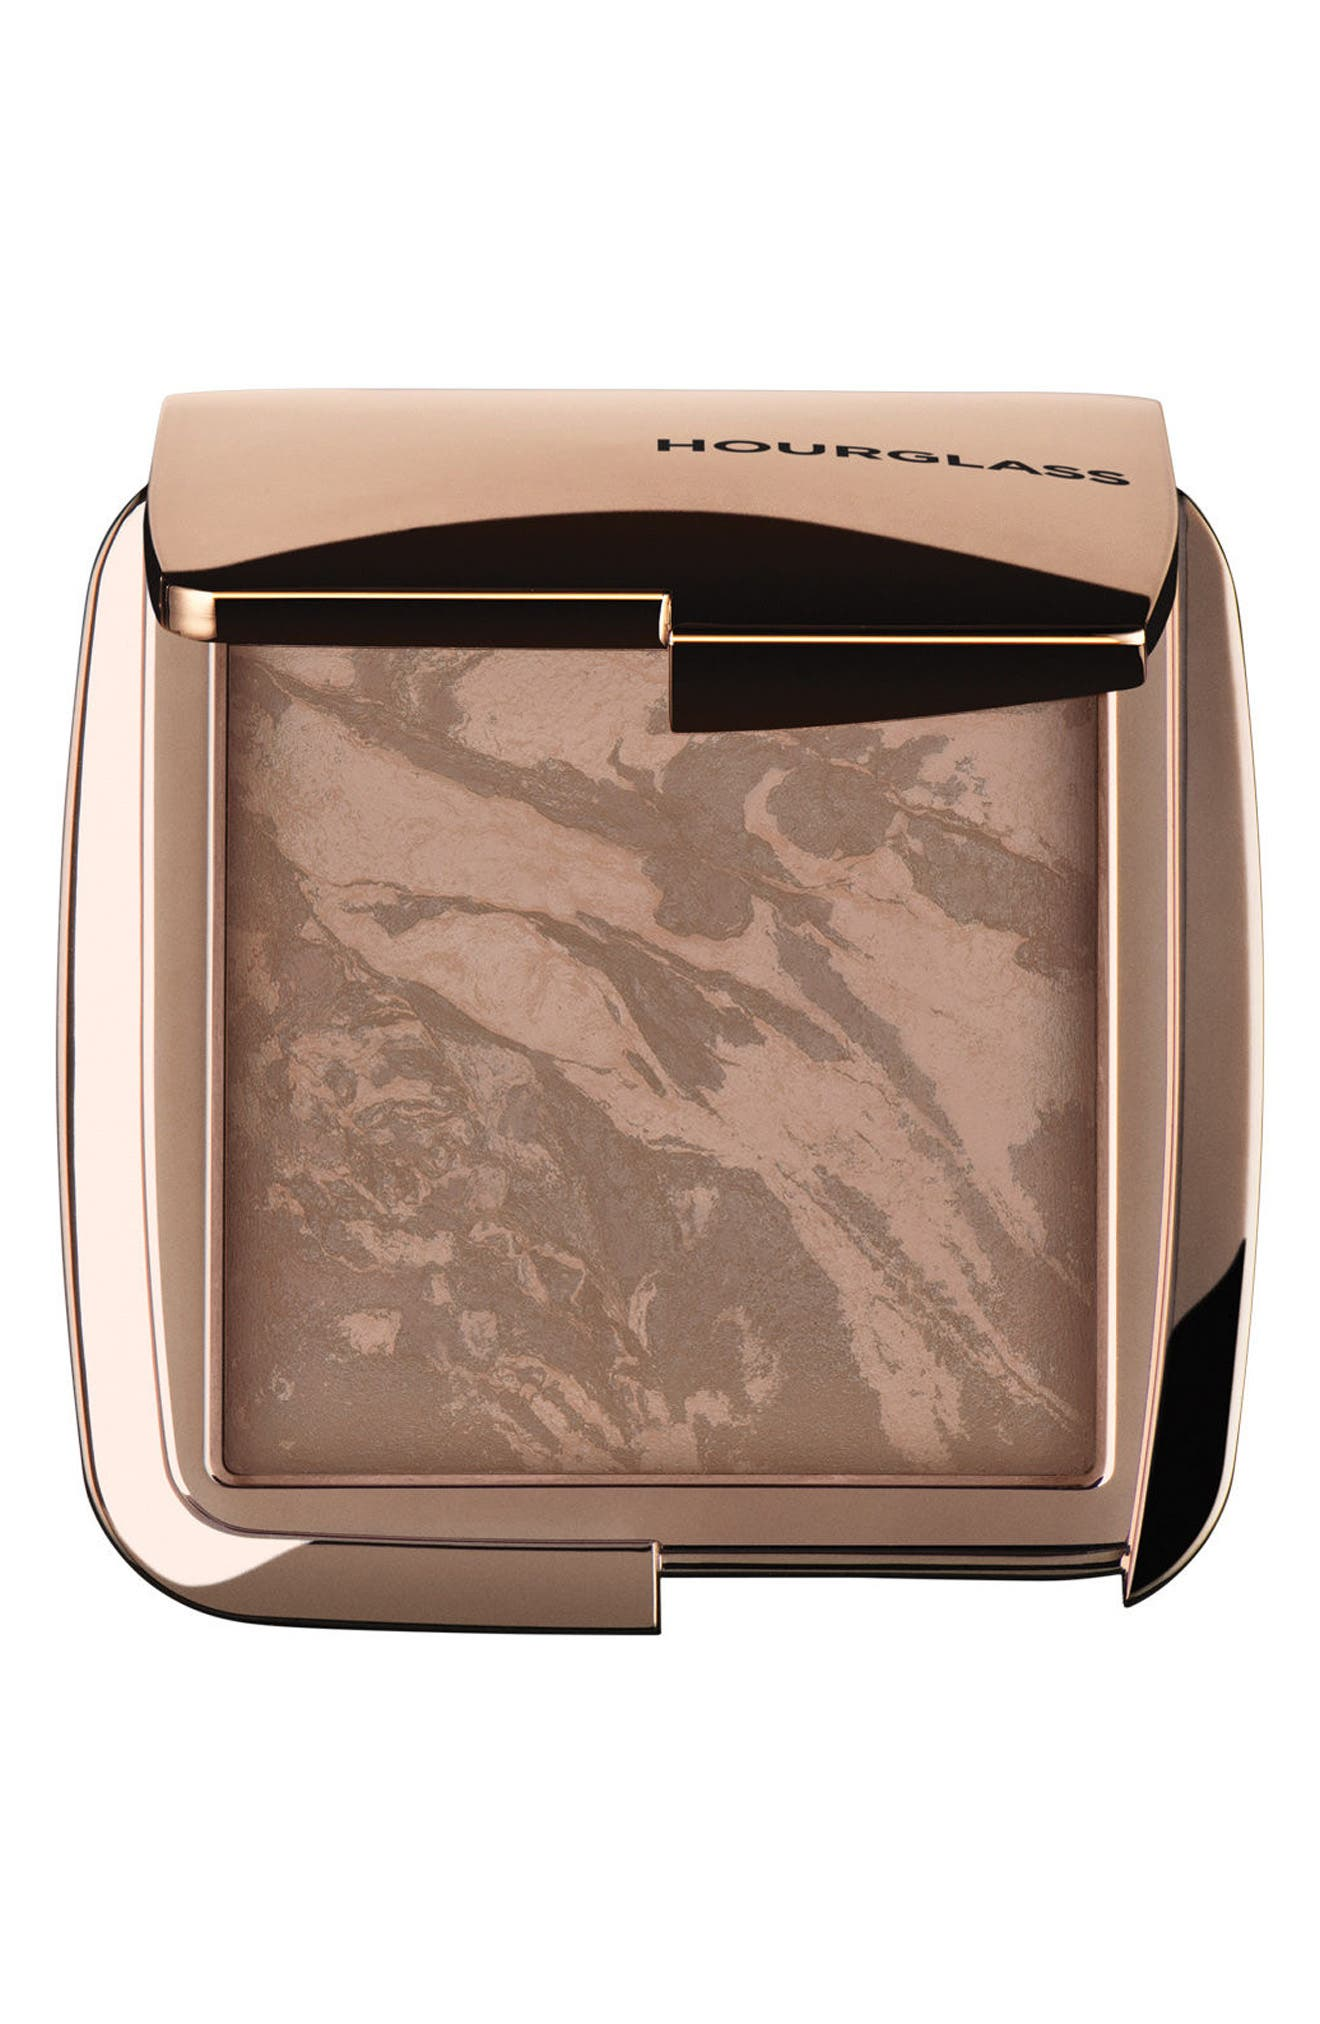 Ambient<sup>®</sup> Lighting Bronzer,                             Main thumbnail 1, color,                             NUDE BRONZE LIGHT